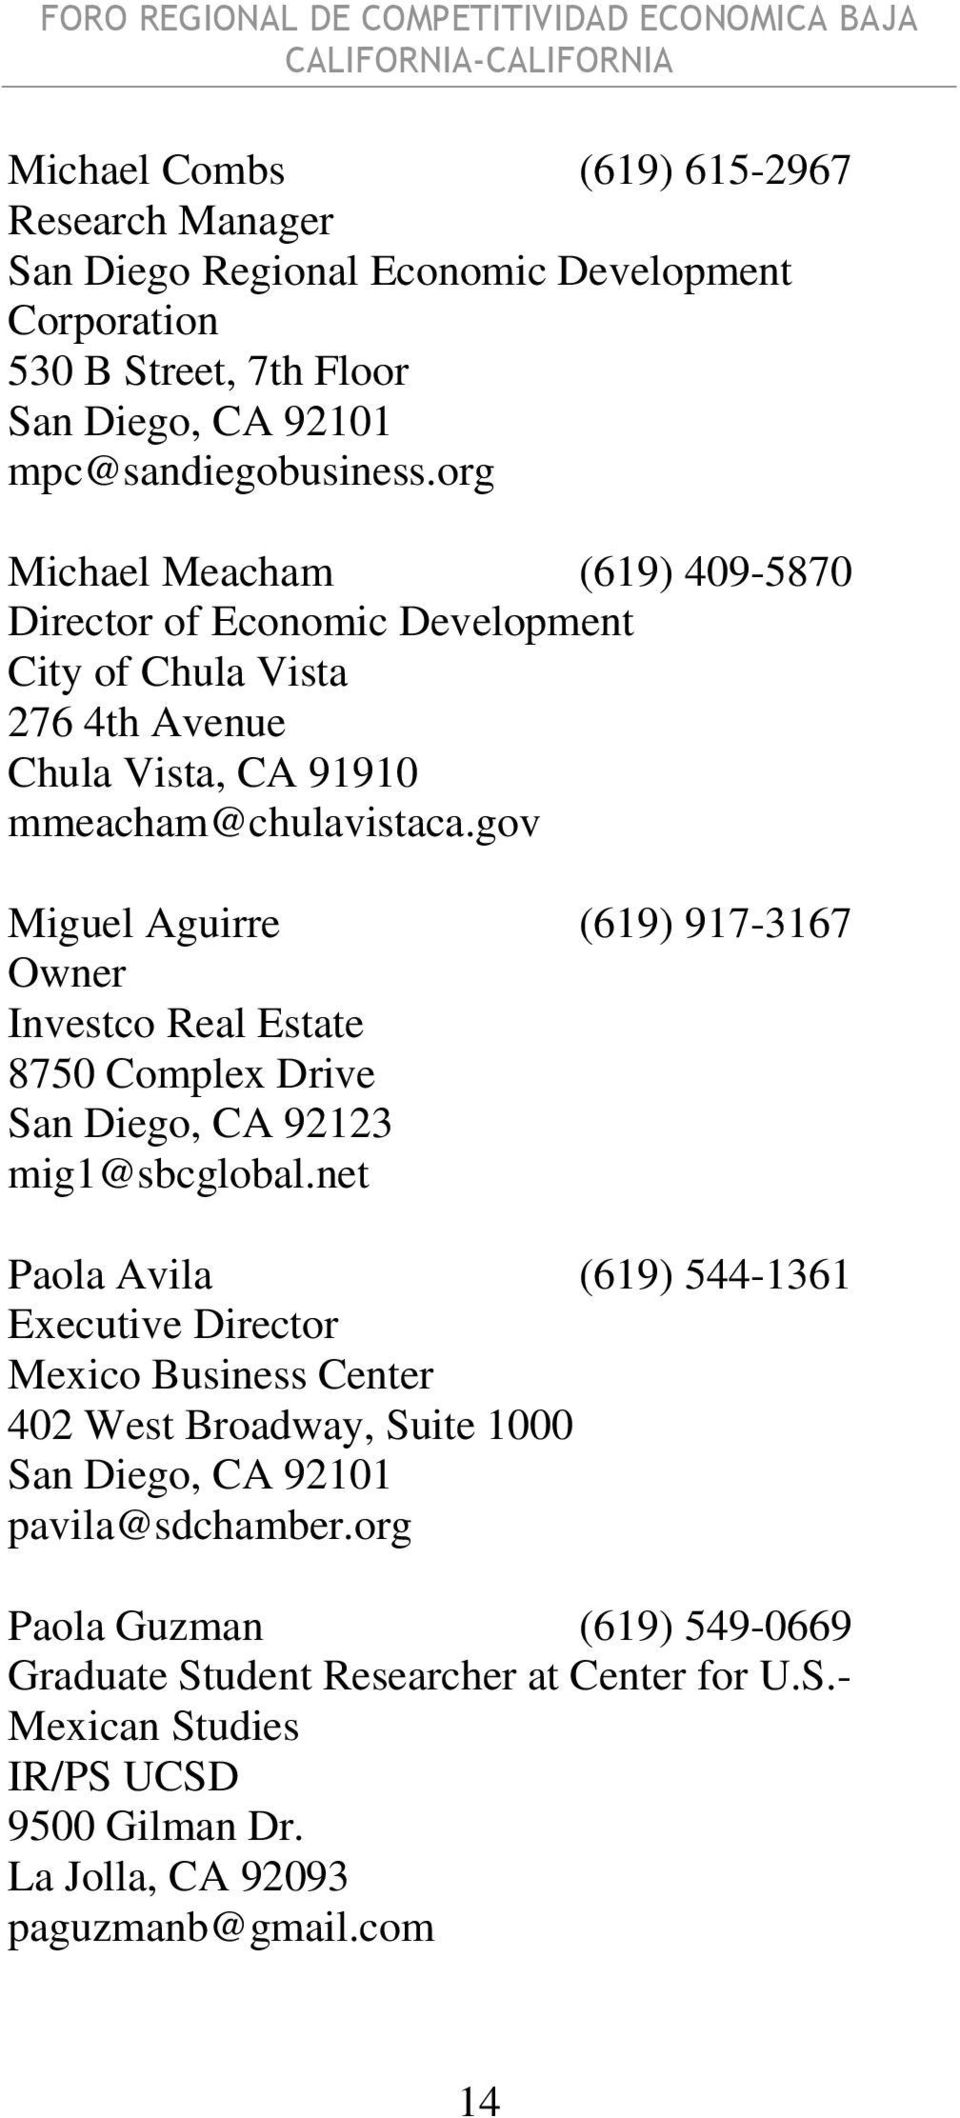 gov Miguel Aguirre (619) 917-3167 Owner Investco Real Estate 8750 Complex Drive San Diego, CA 92123 mig1@sbcglobal.